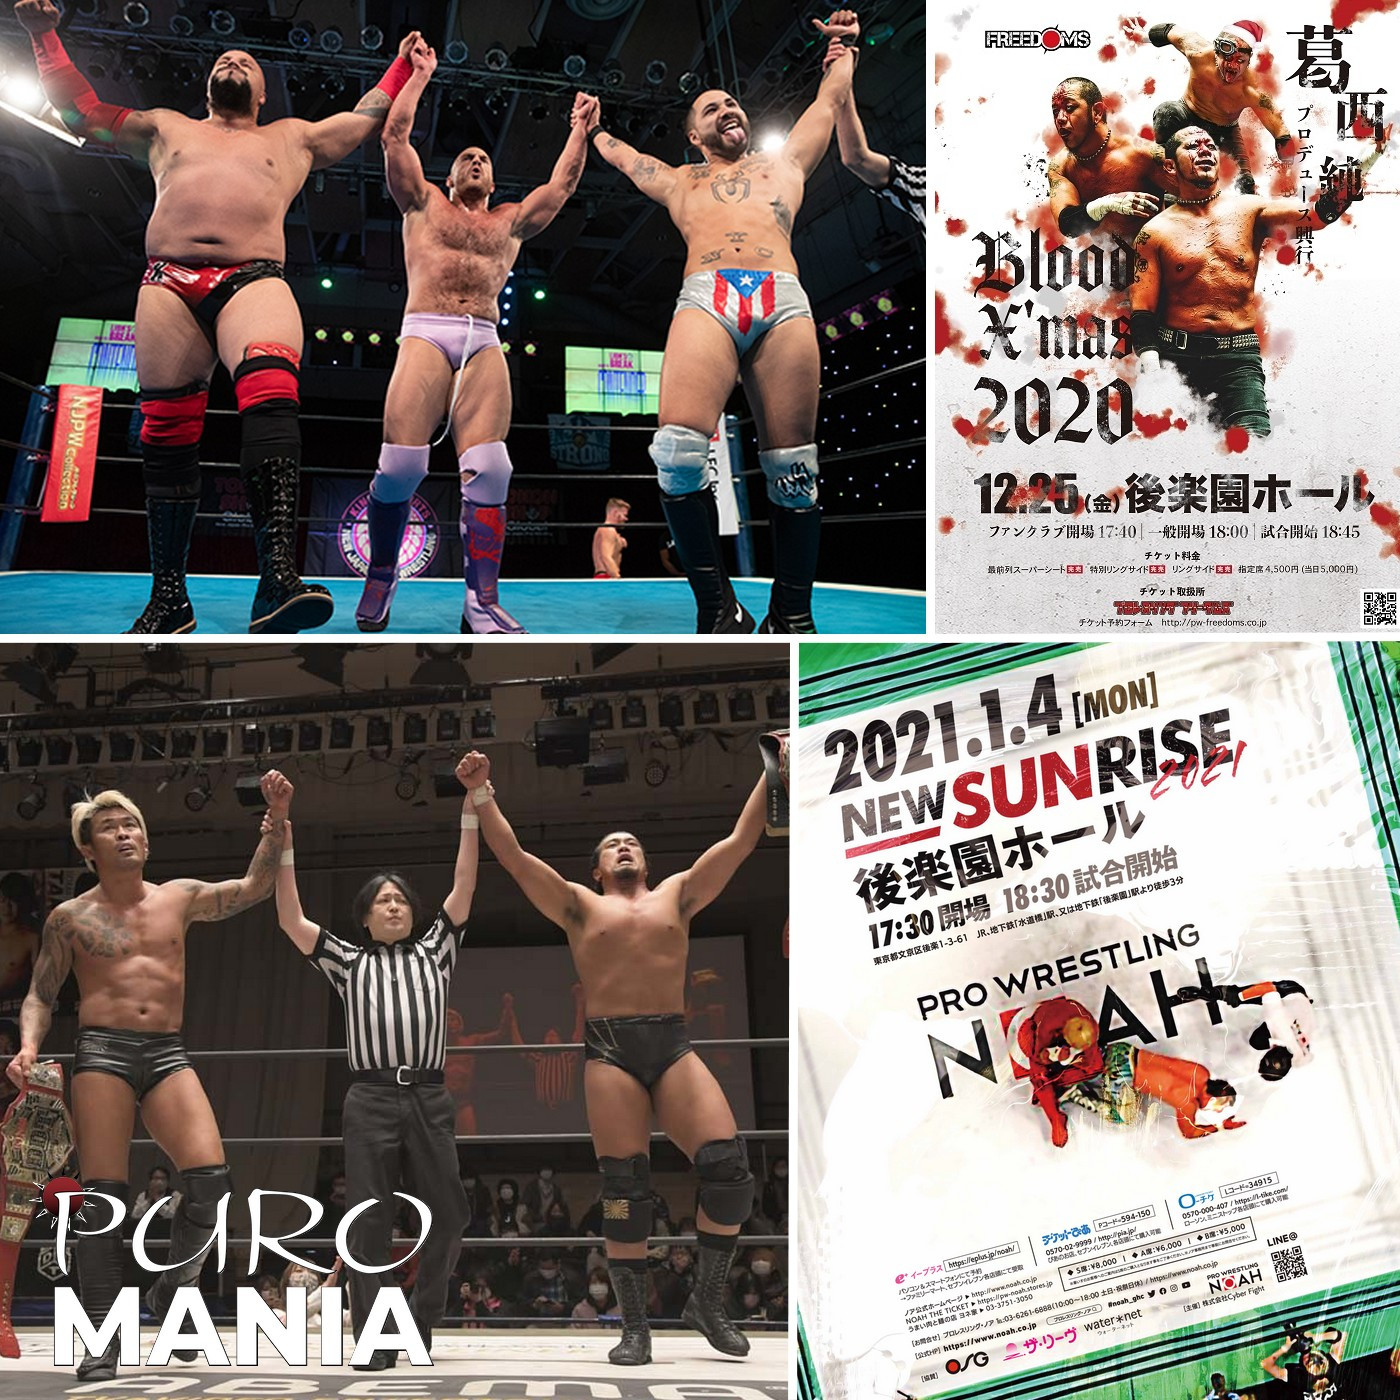 PuroMania #17 : Freedoms Blood X'Mas 2020 + NOAH + DDT & NJPW STRONG.